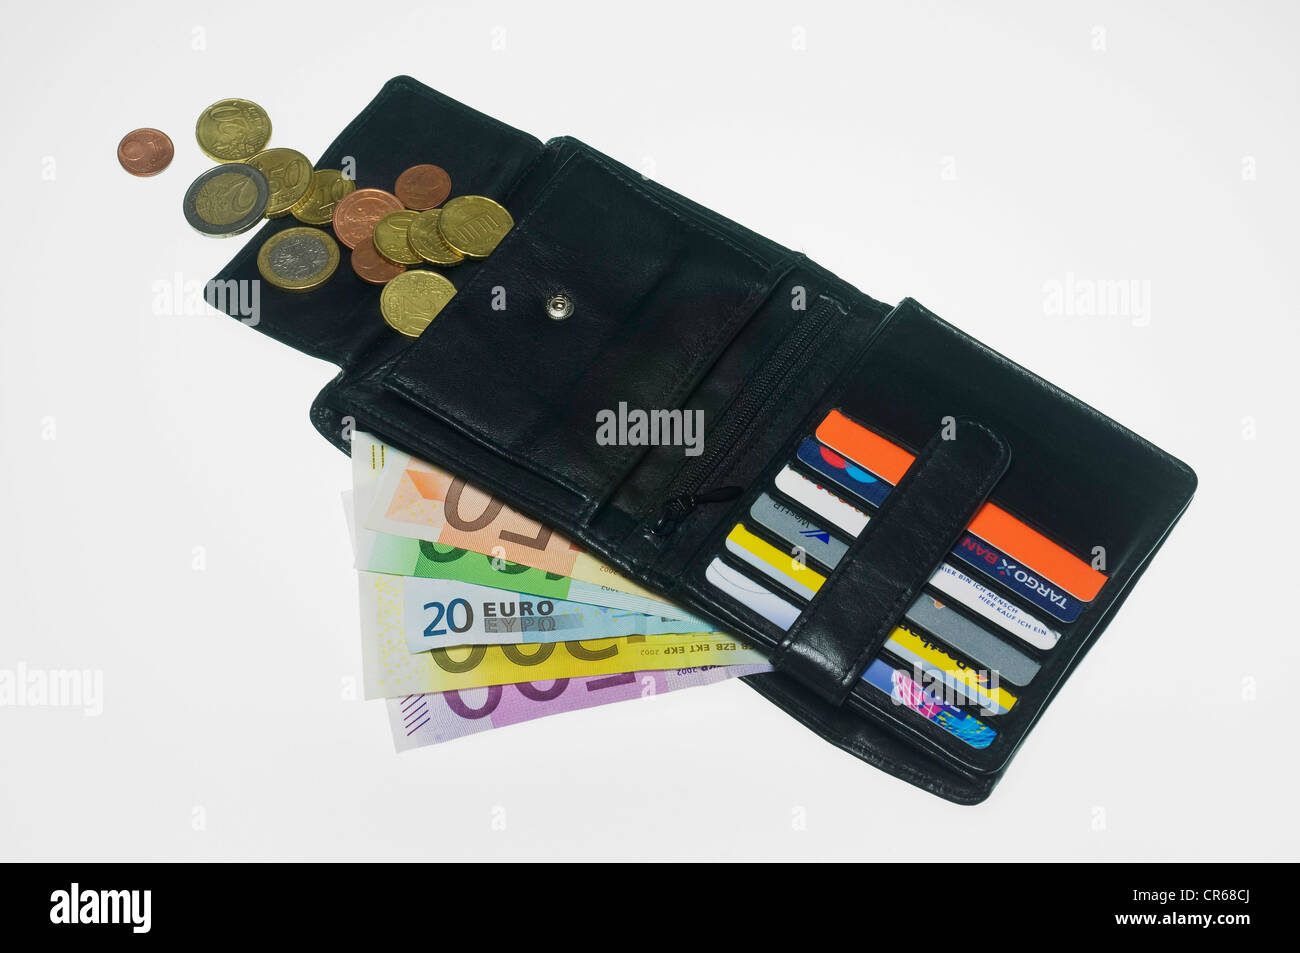 Open wallet with euro banknotes, coins and card compartments - Stock Image